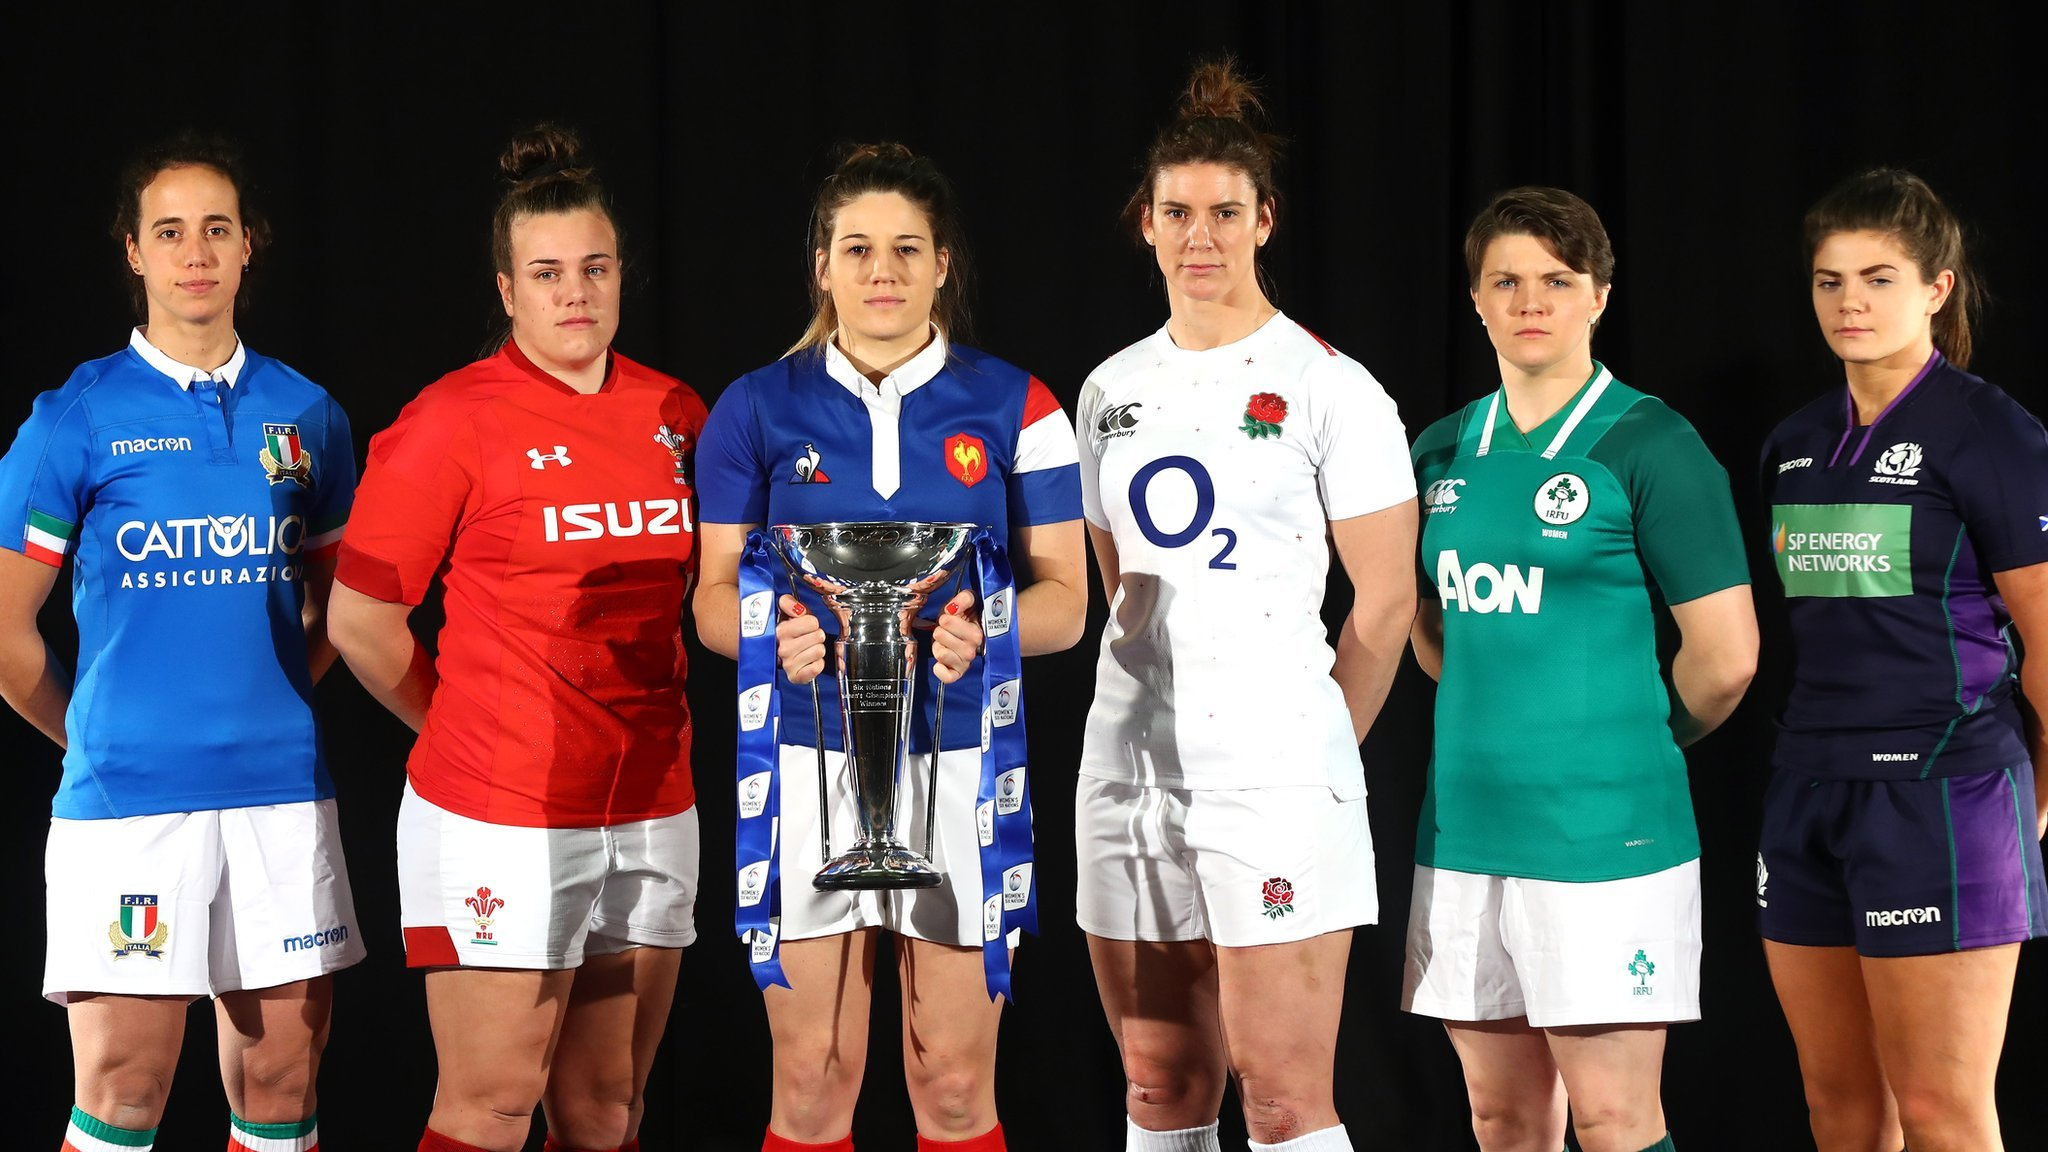 England have target on backs in Women's Six Nations